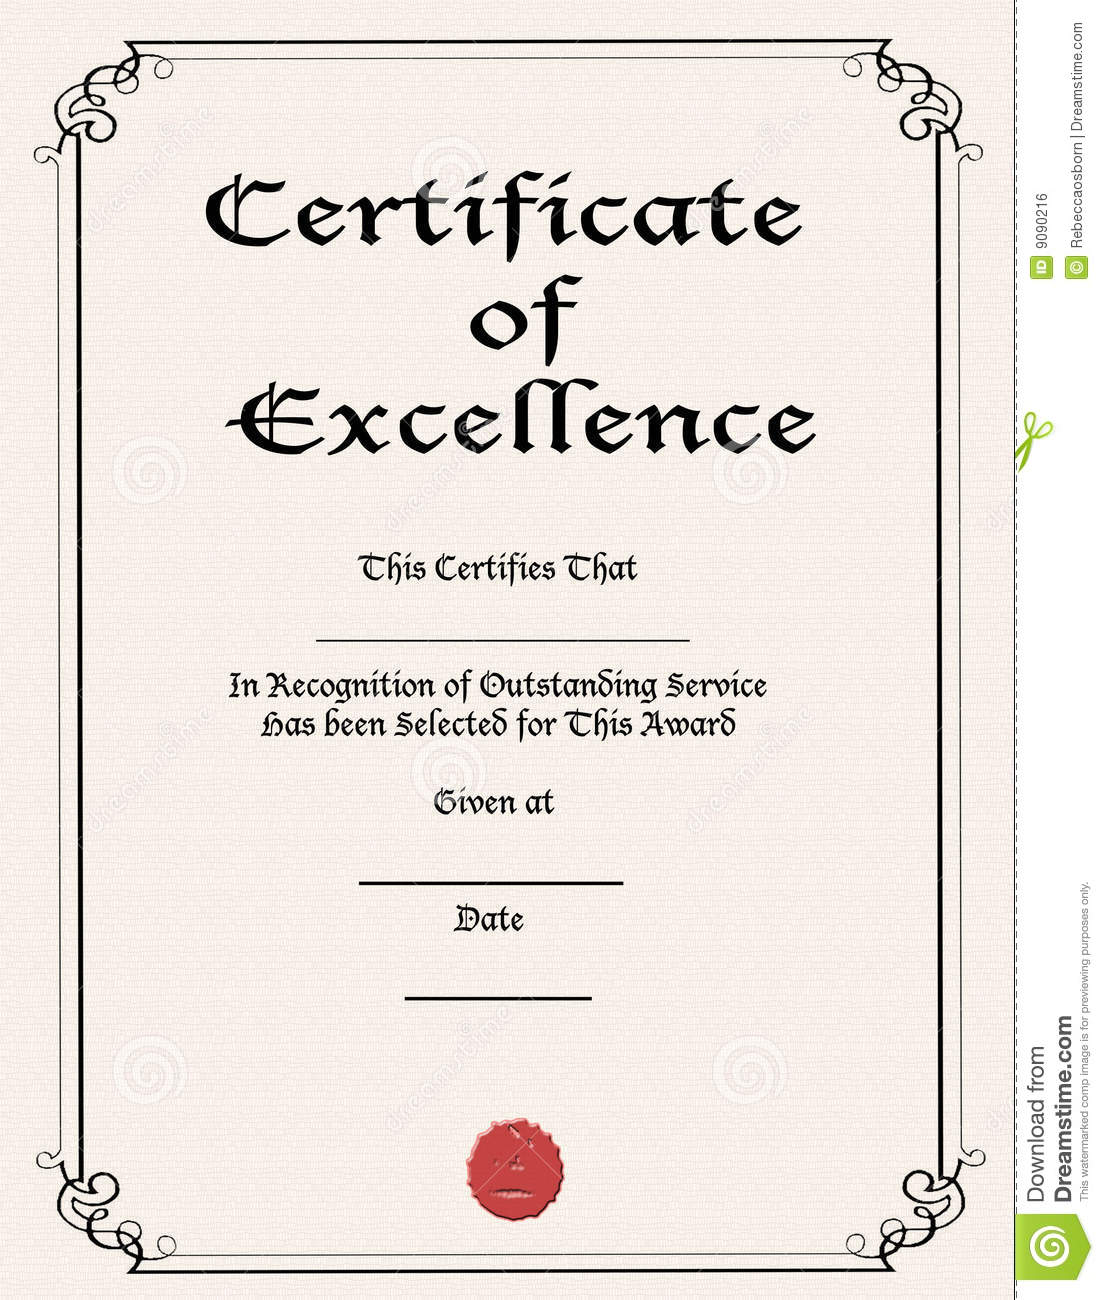 Doc550425 Certificate of Excellence Template Free Certificate – Certificate of Excellence Template Free